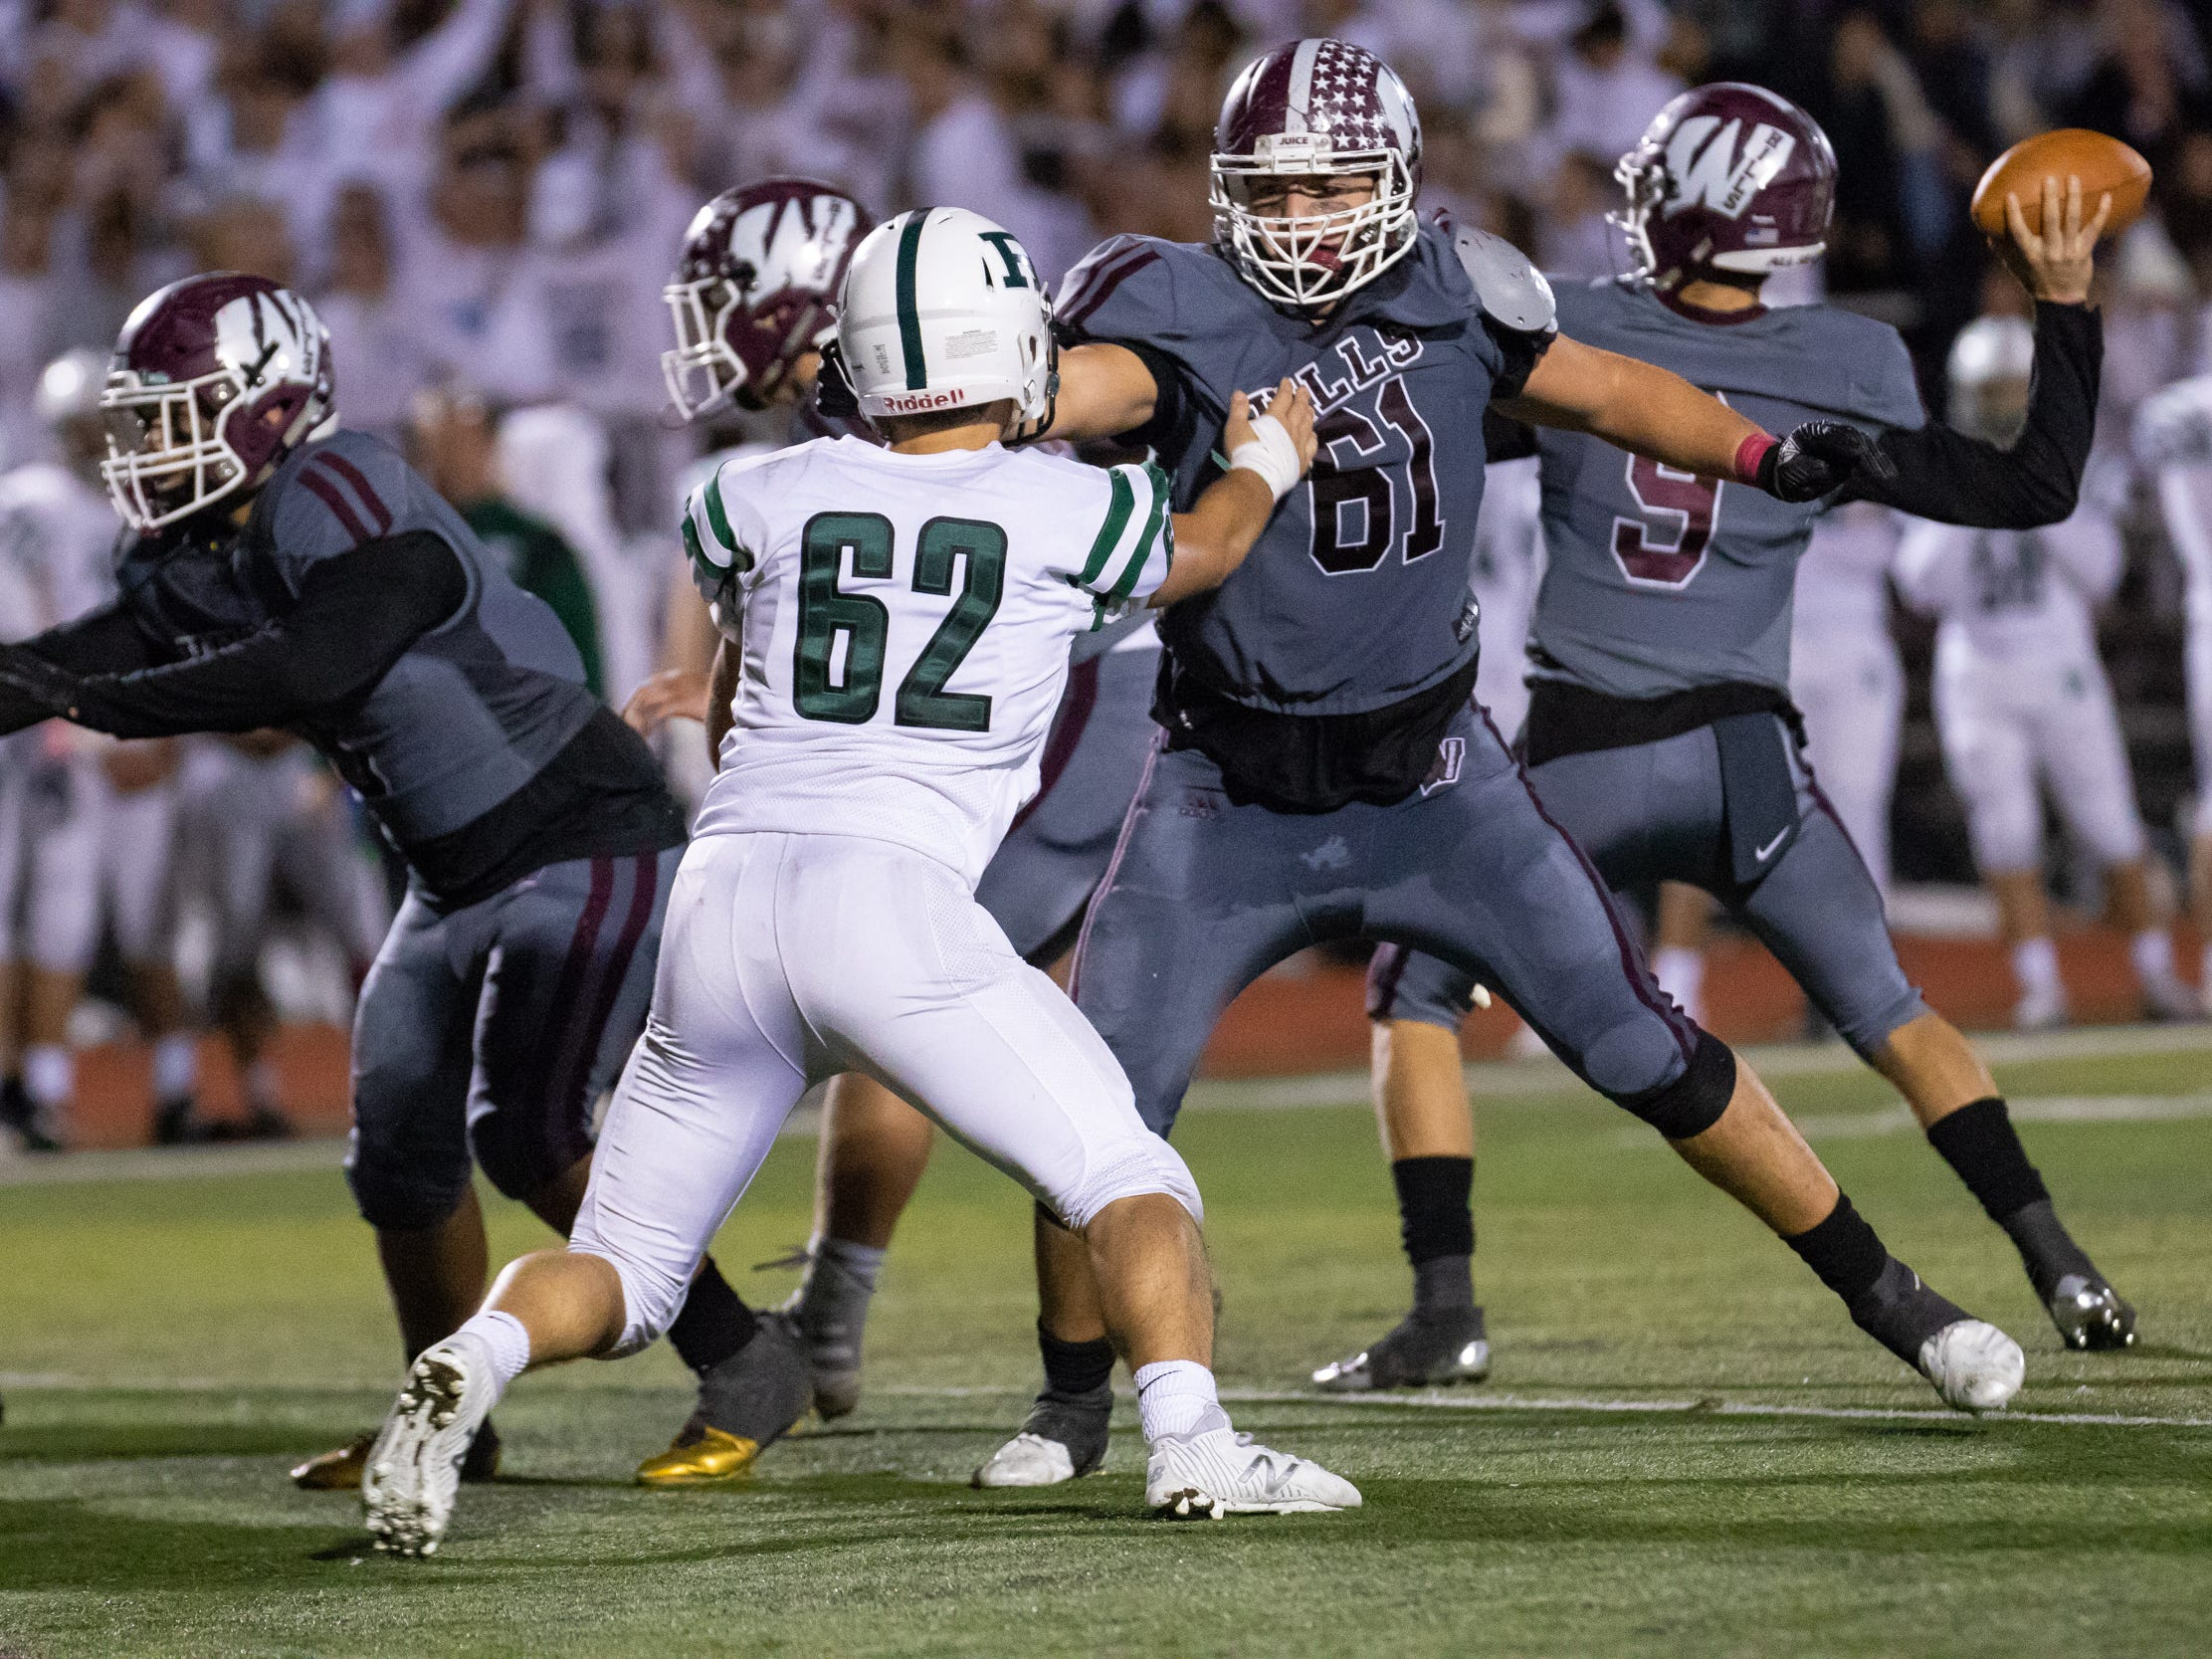 Wayne Hills lineman Joe Rondi holding back Ramapo #62 Josh D'Avanzo Friday, October 12, 2018.